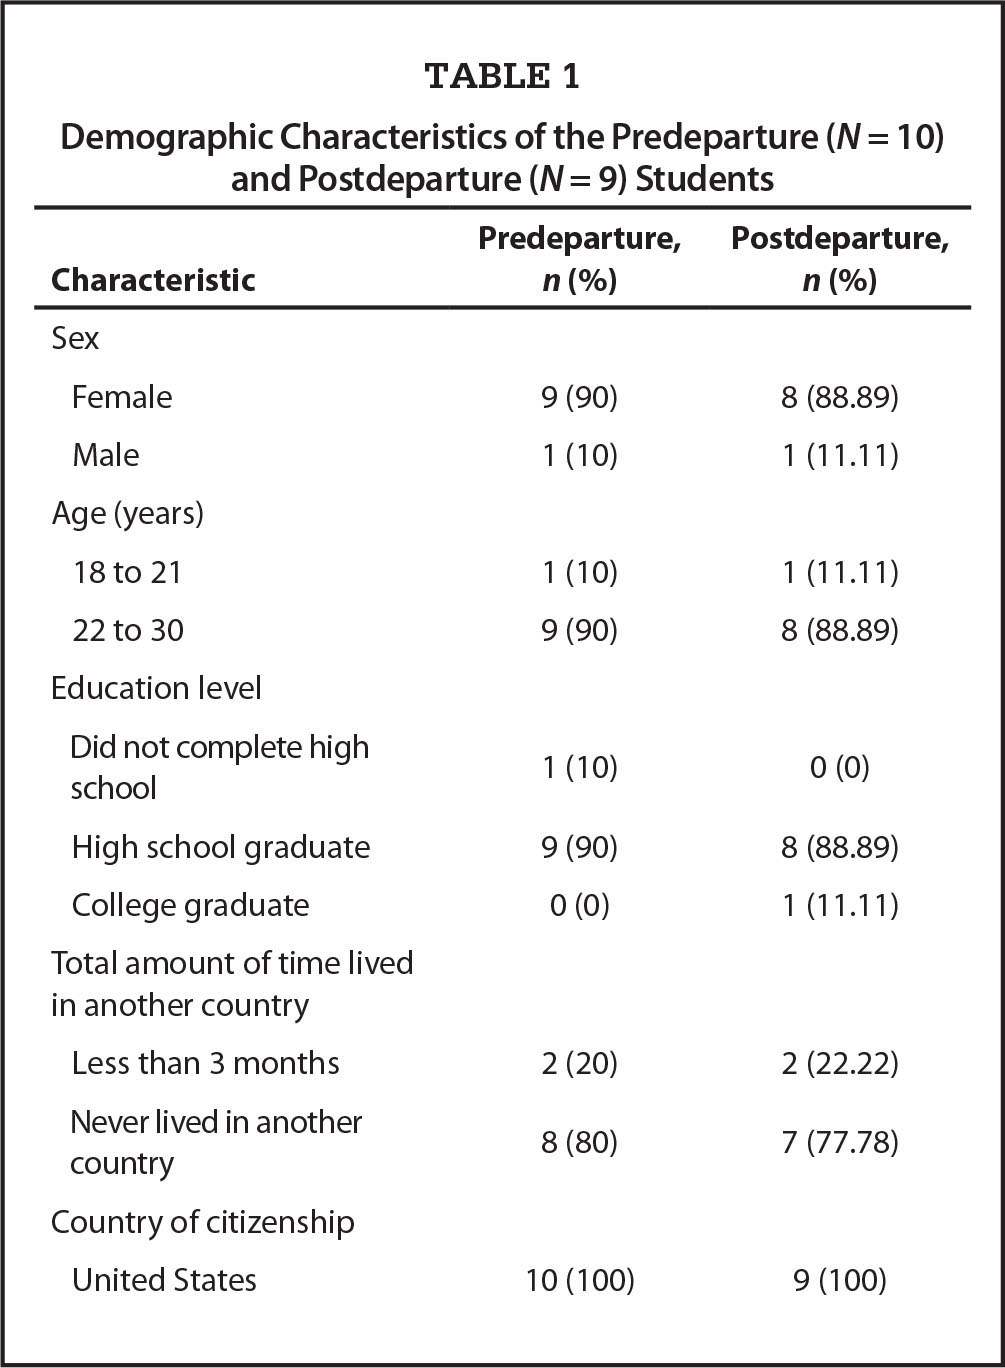 Demographic Characteristics of the Predeparture (N = 10) and Postdeparture (N = 9) Students